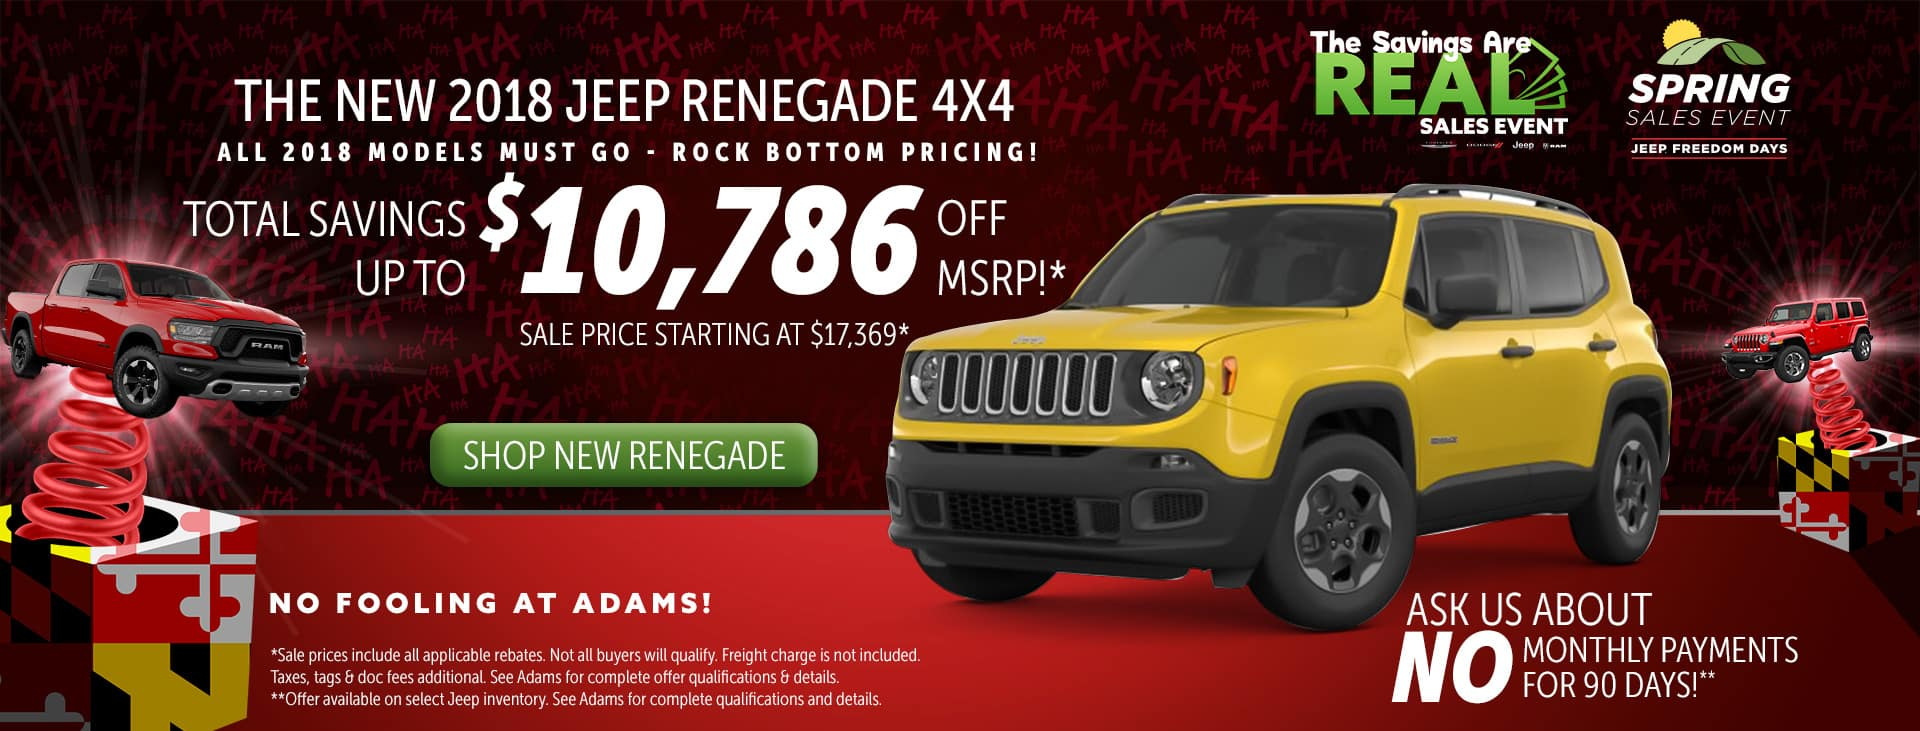 over $10,500 off msrp on jeep renegade!